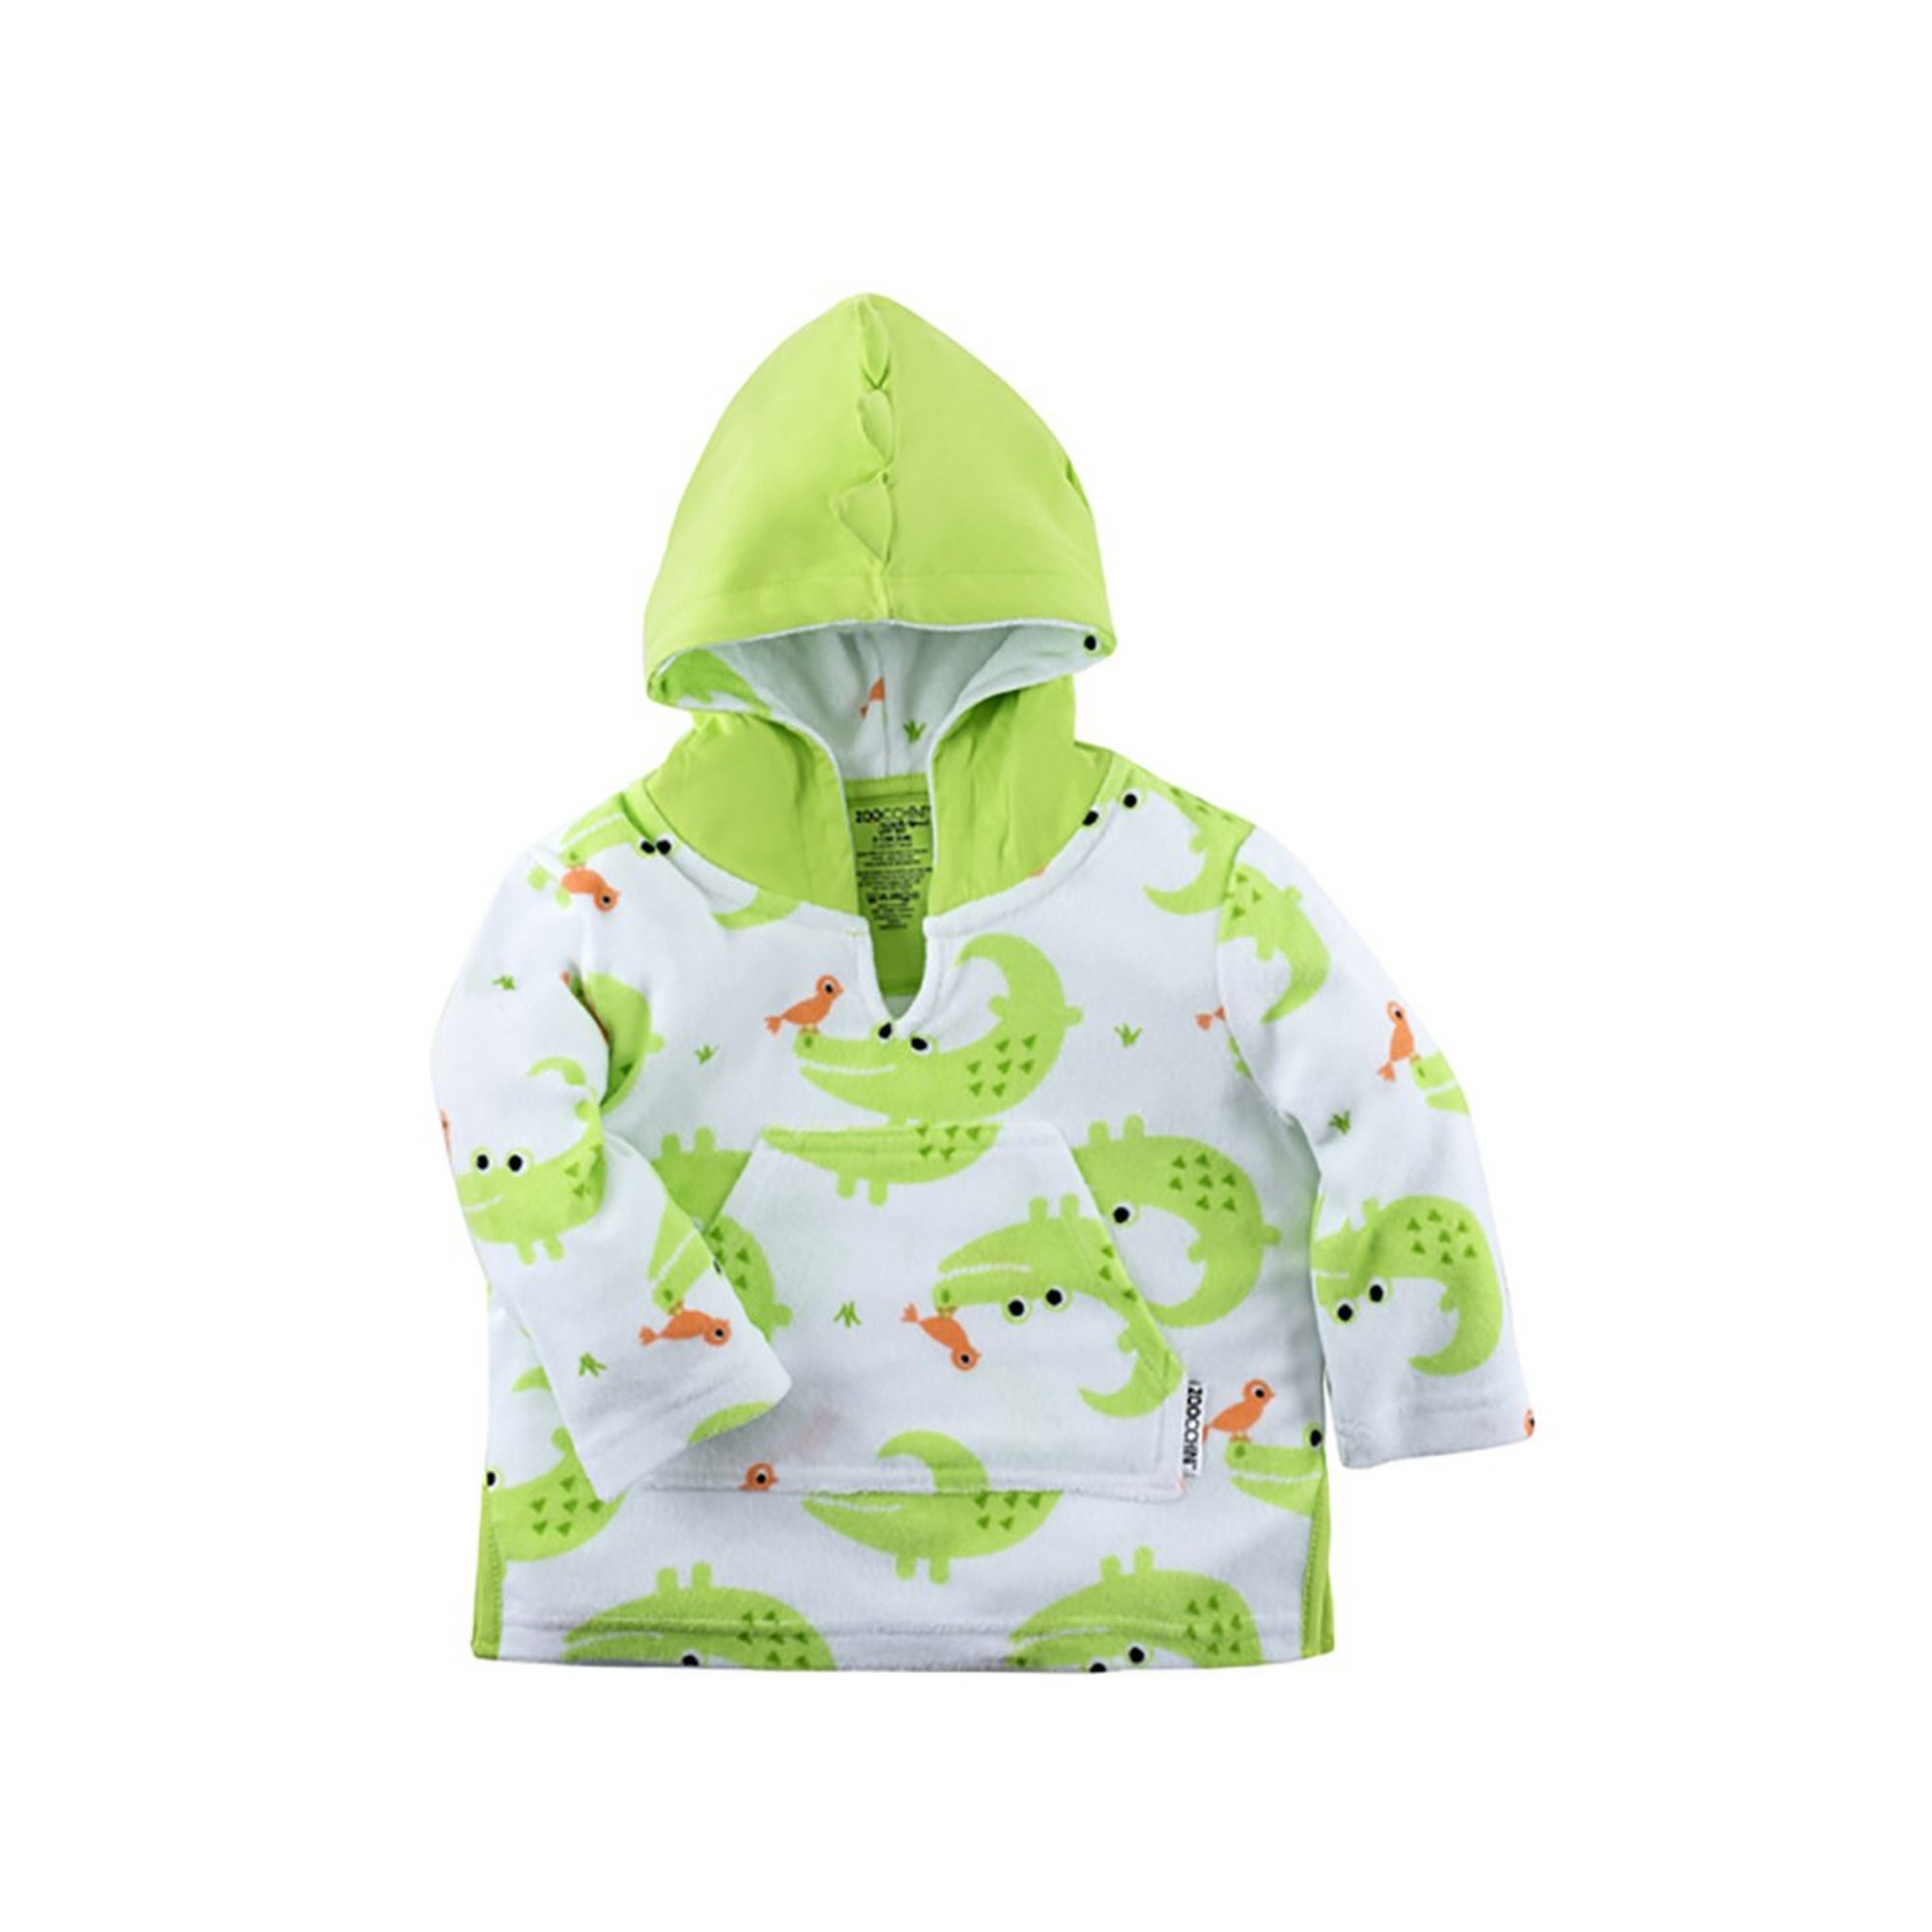 Image of Zoocchini Cotton Babies Cover-Up - Seahorse